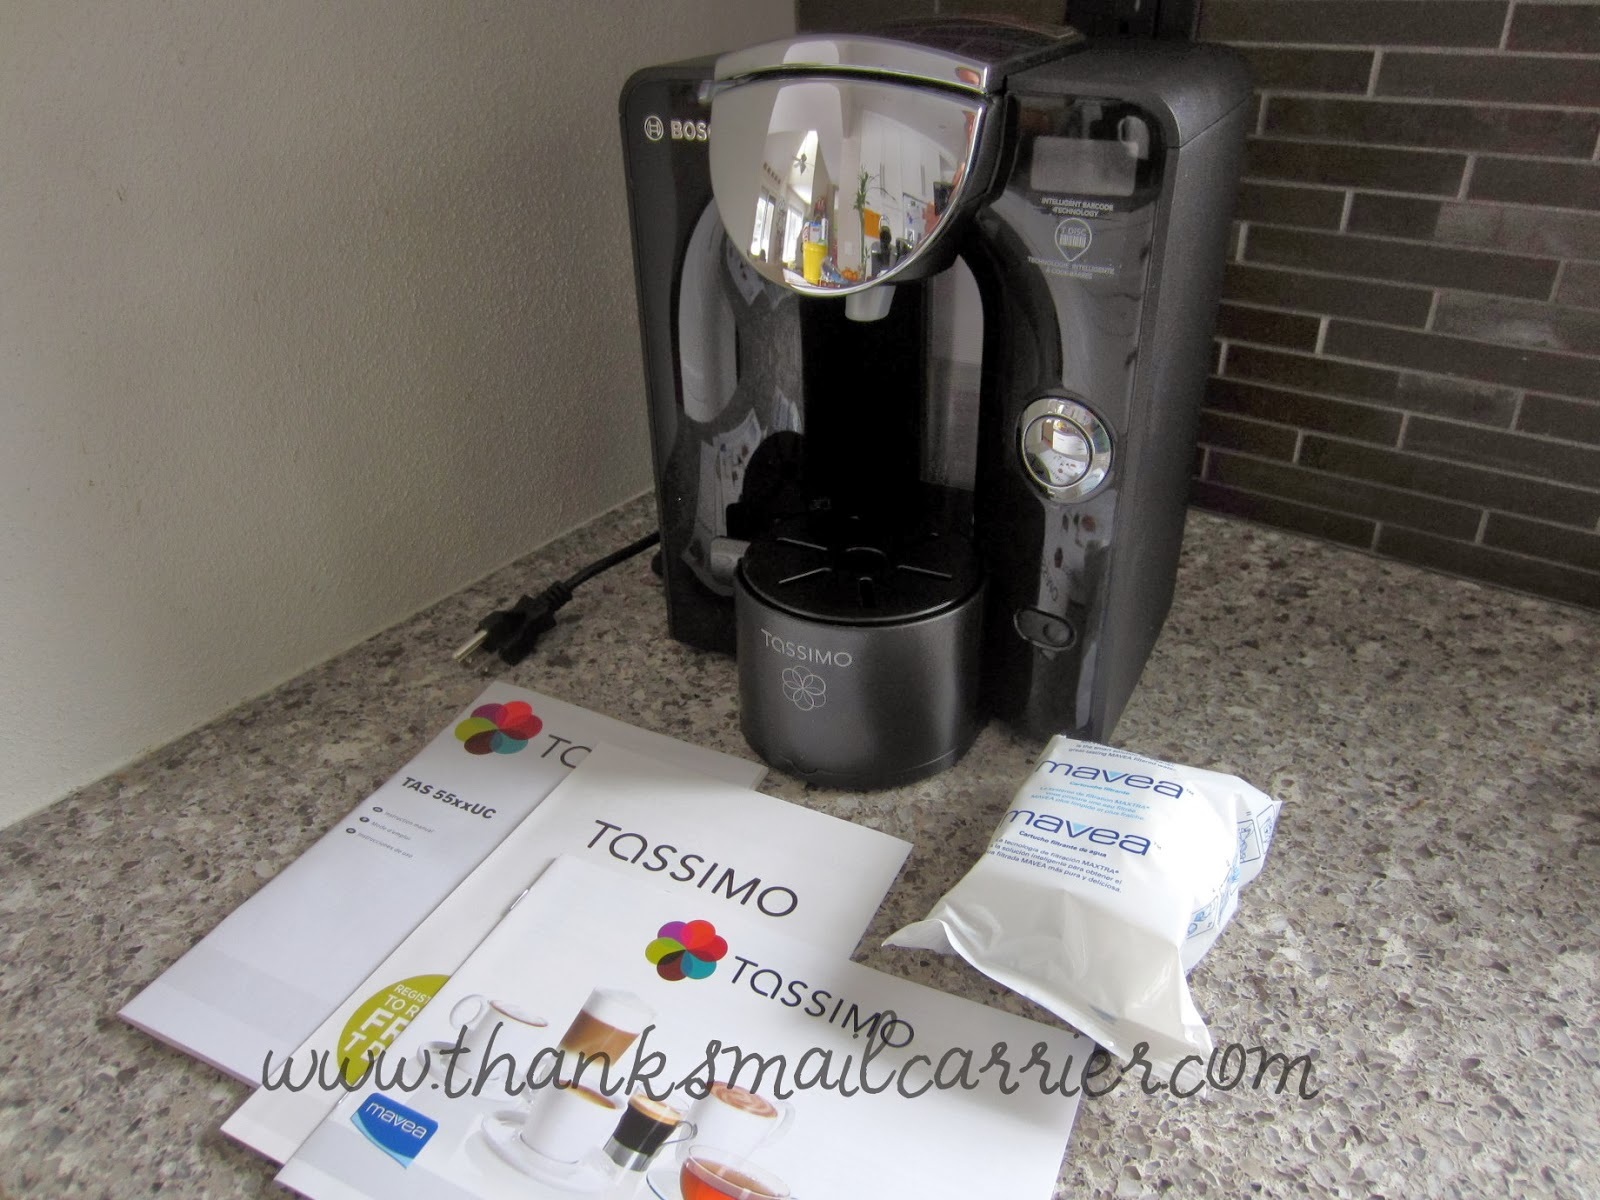 Tassimo T55 review